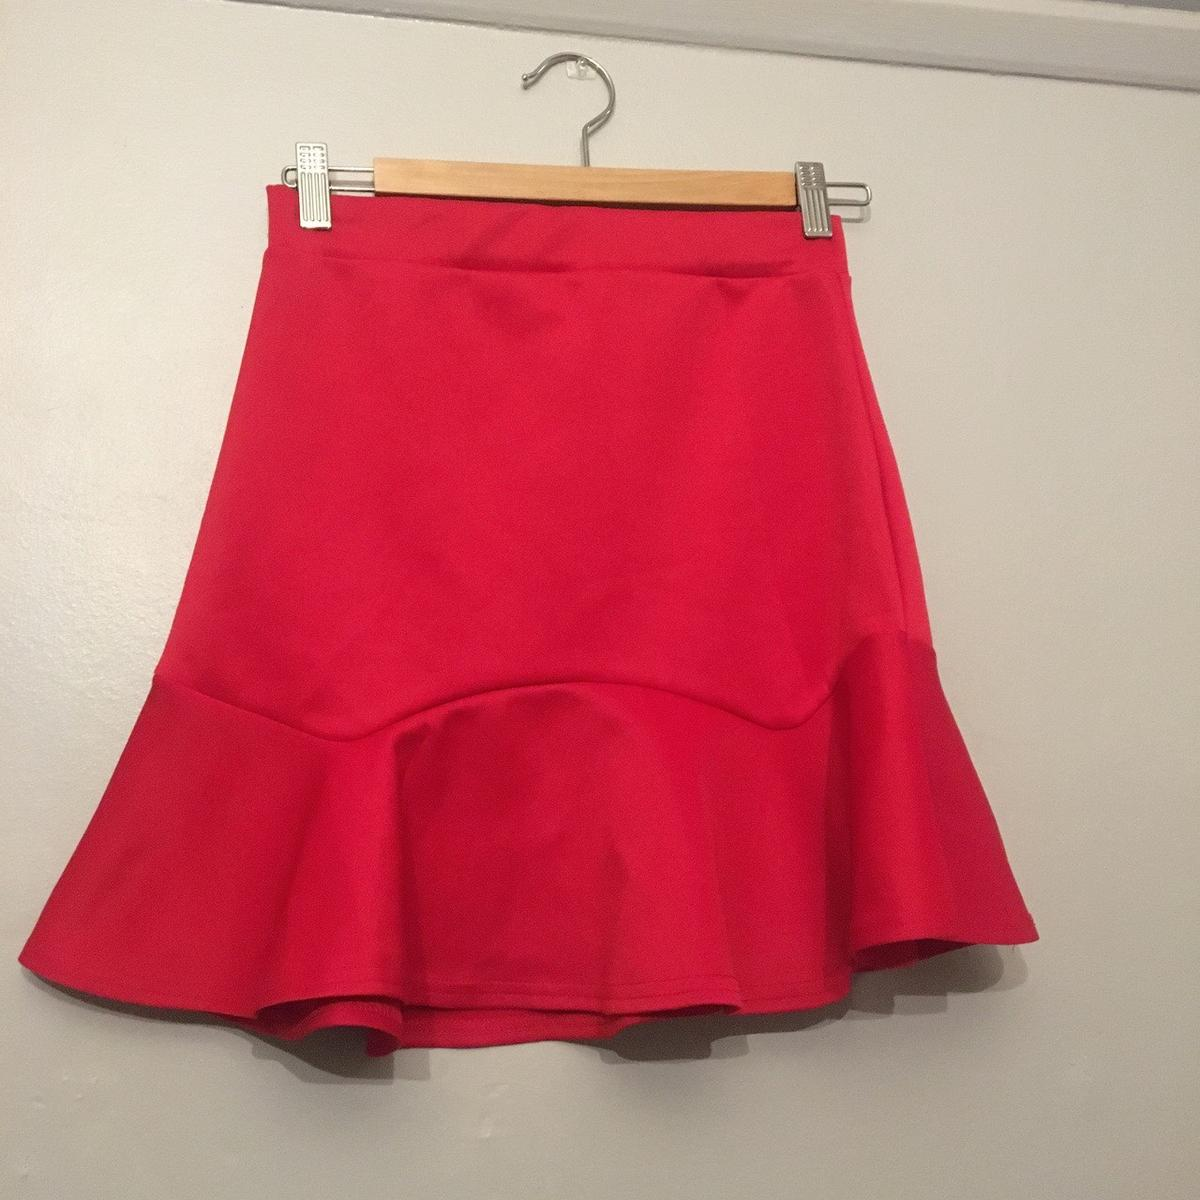 Worn but in very good condition Selling it as it no longer fits me Size 10  Smoke free household Pet free houshold